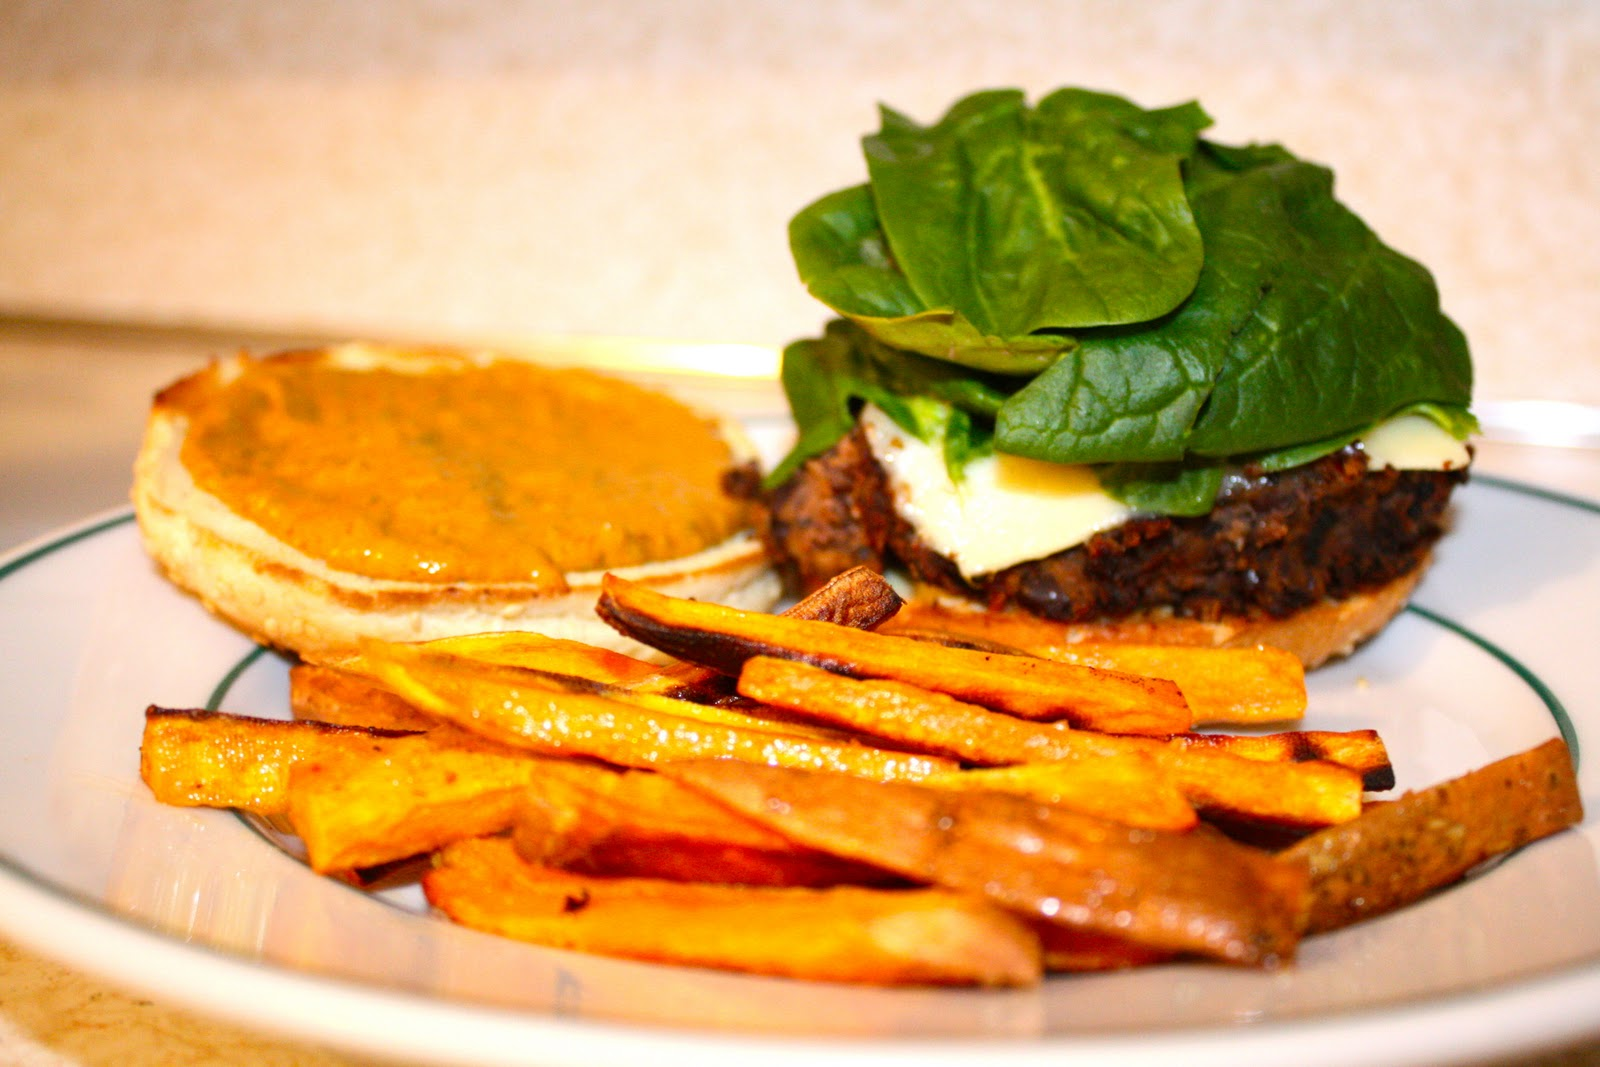 ... Smoked-Paprika Aioli and Oven-Baked Sweet Potato Fries | The Blog at